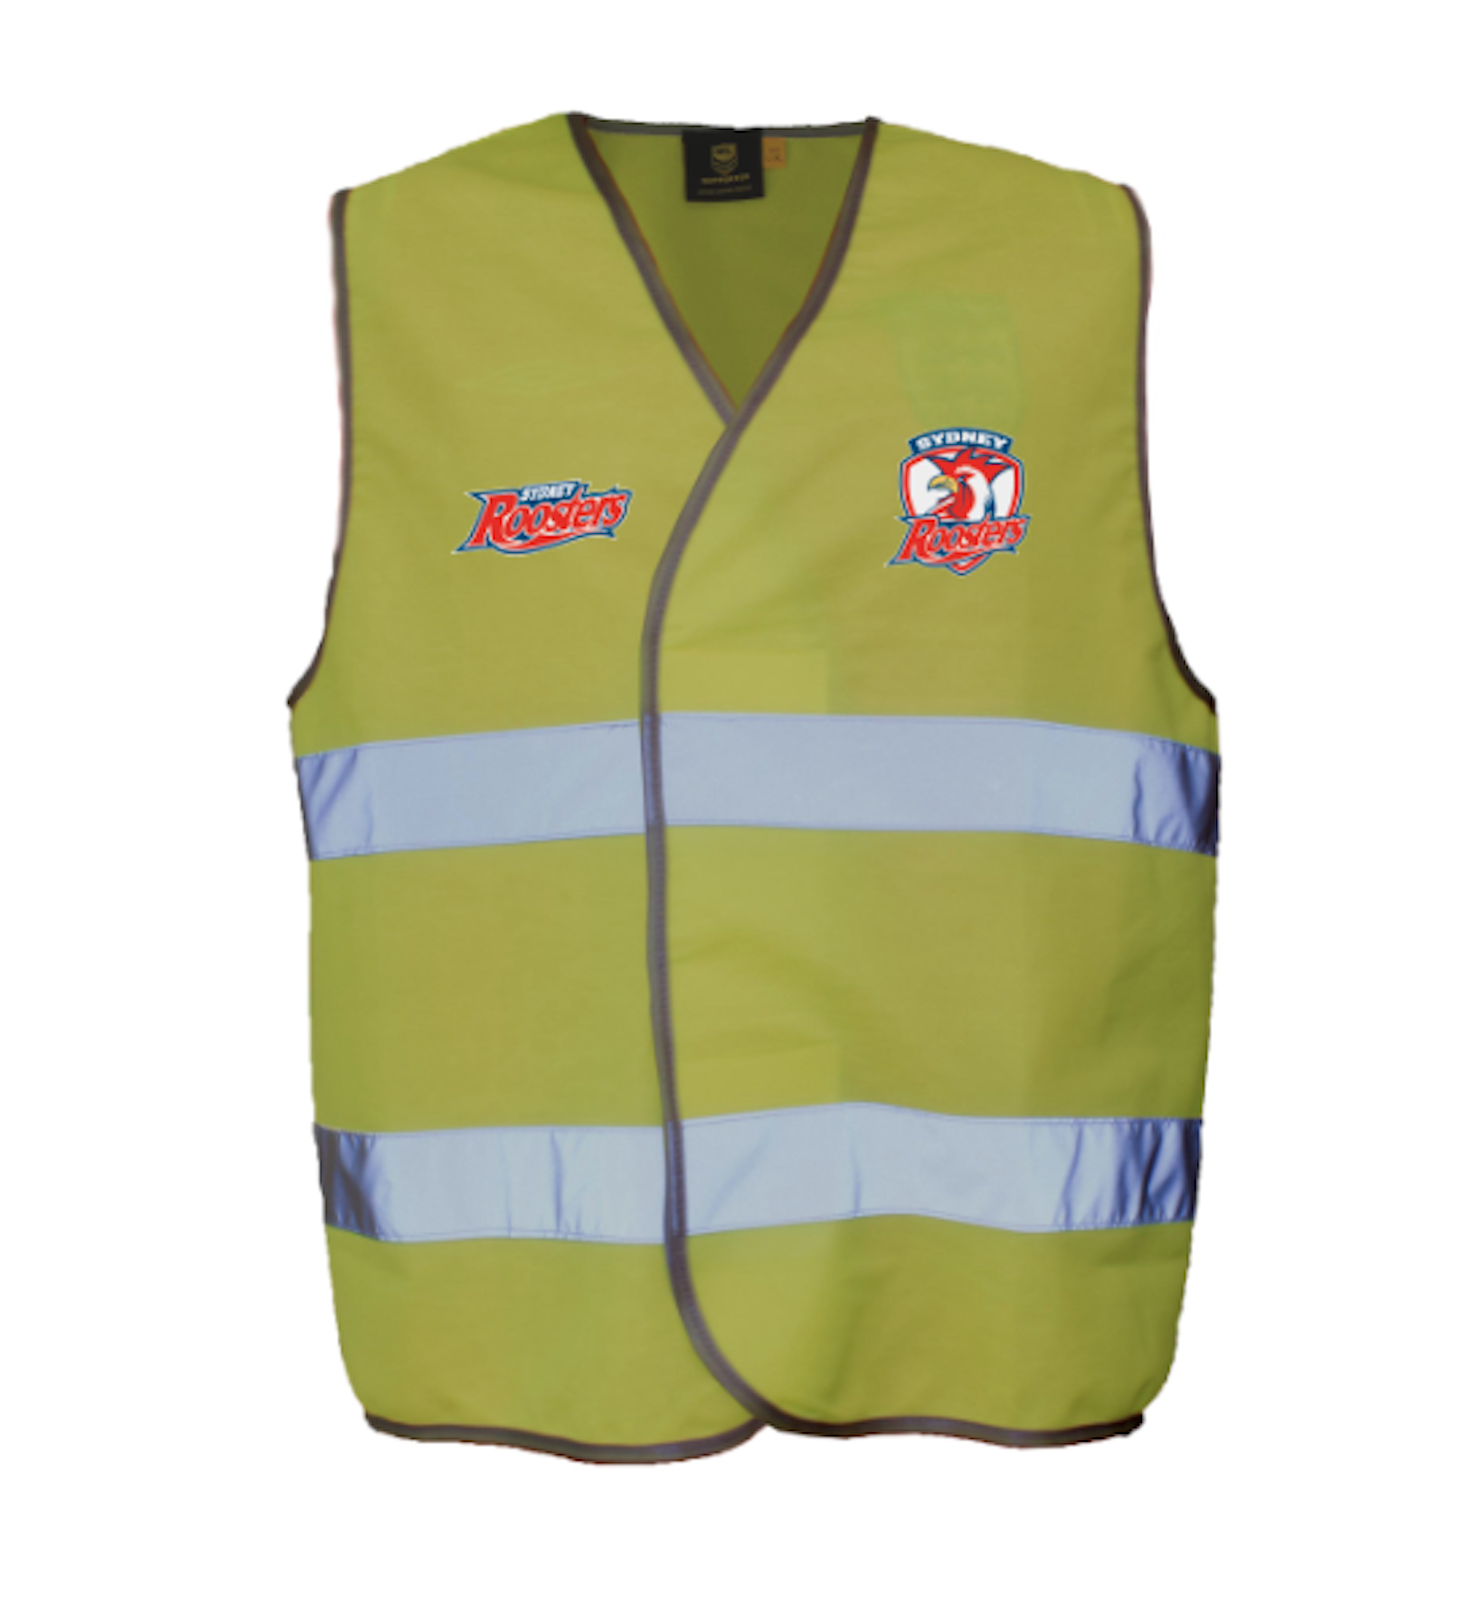 Sydney-Roosters-NRL-Hi-Viz-Yellow-Safety-Vest-with-Reflective-Tape-L-XL